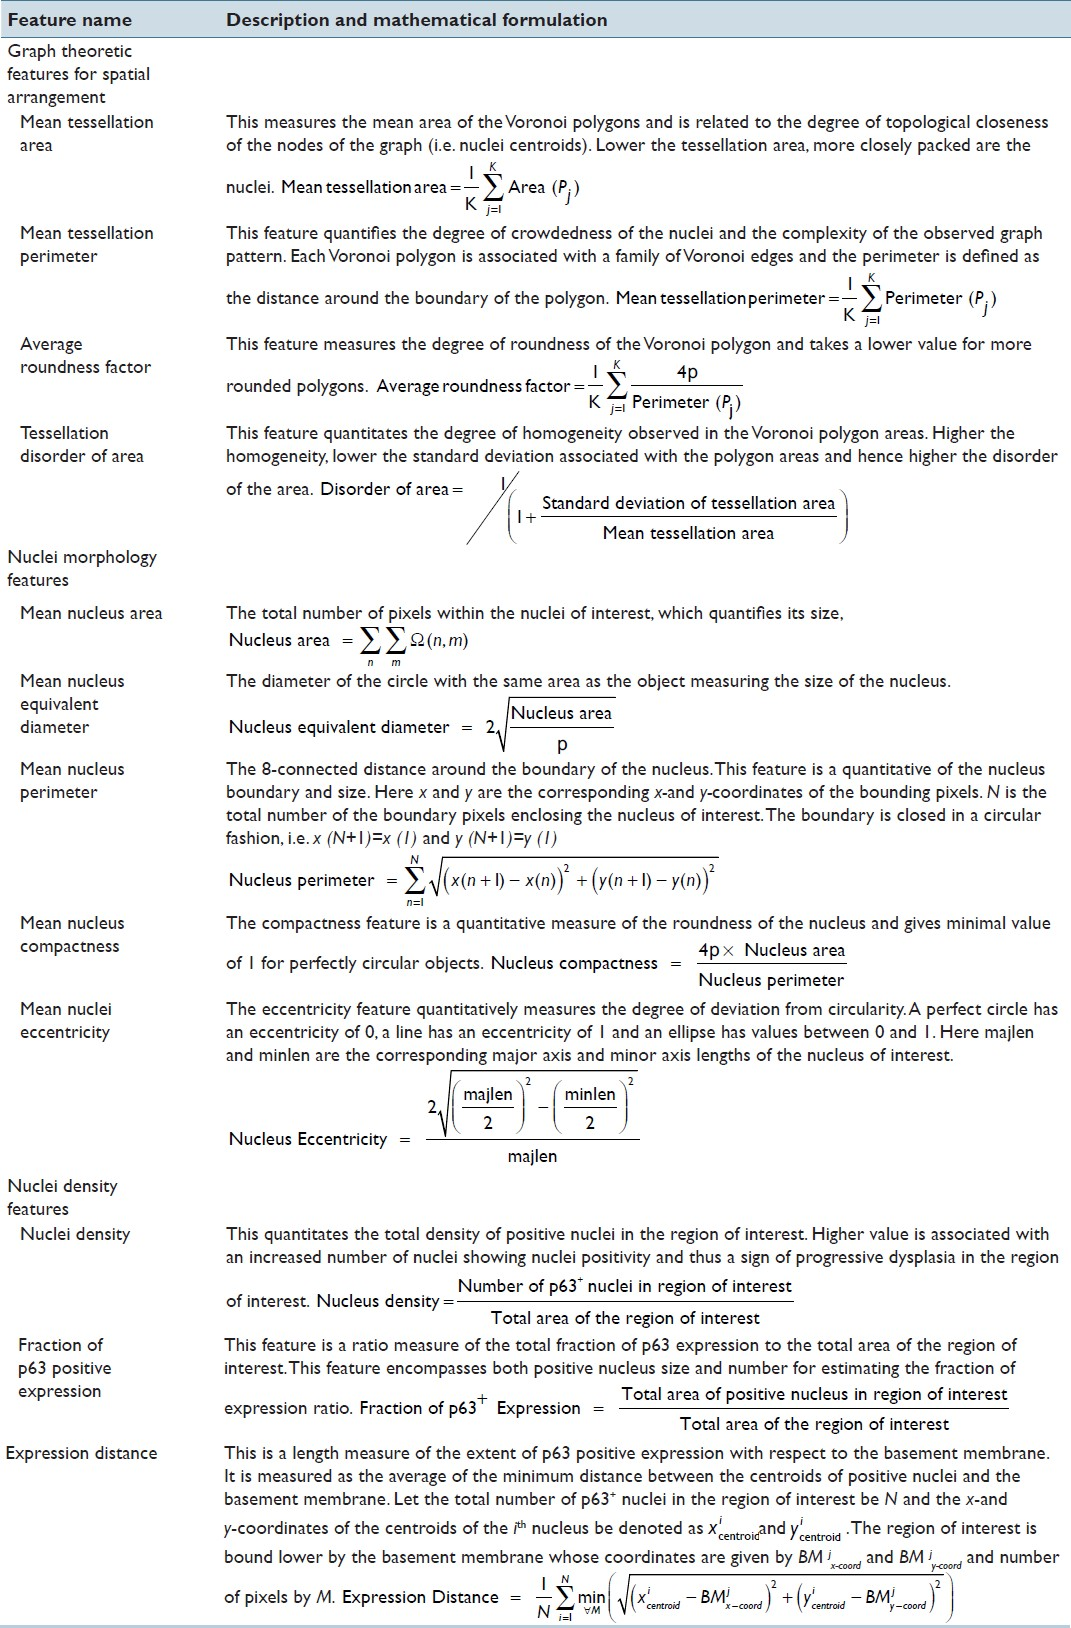 Table 1: Description and mathematical formulation of extracted biologically relevant features